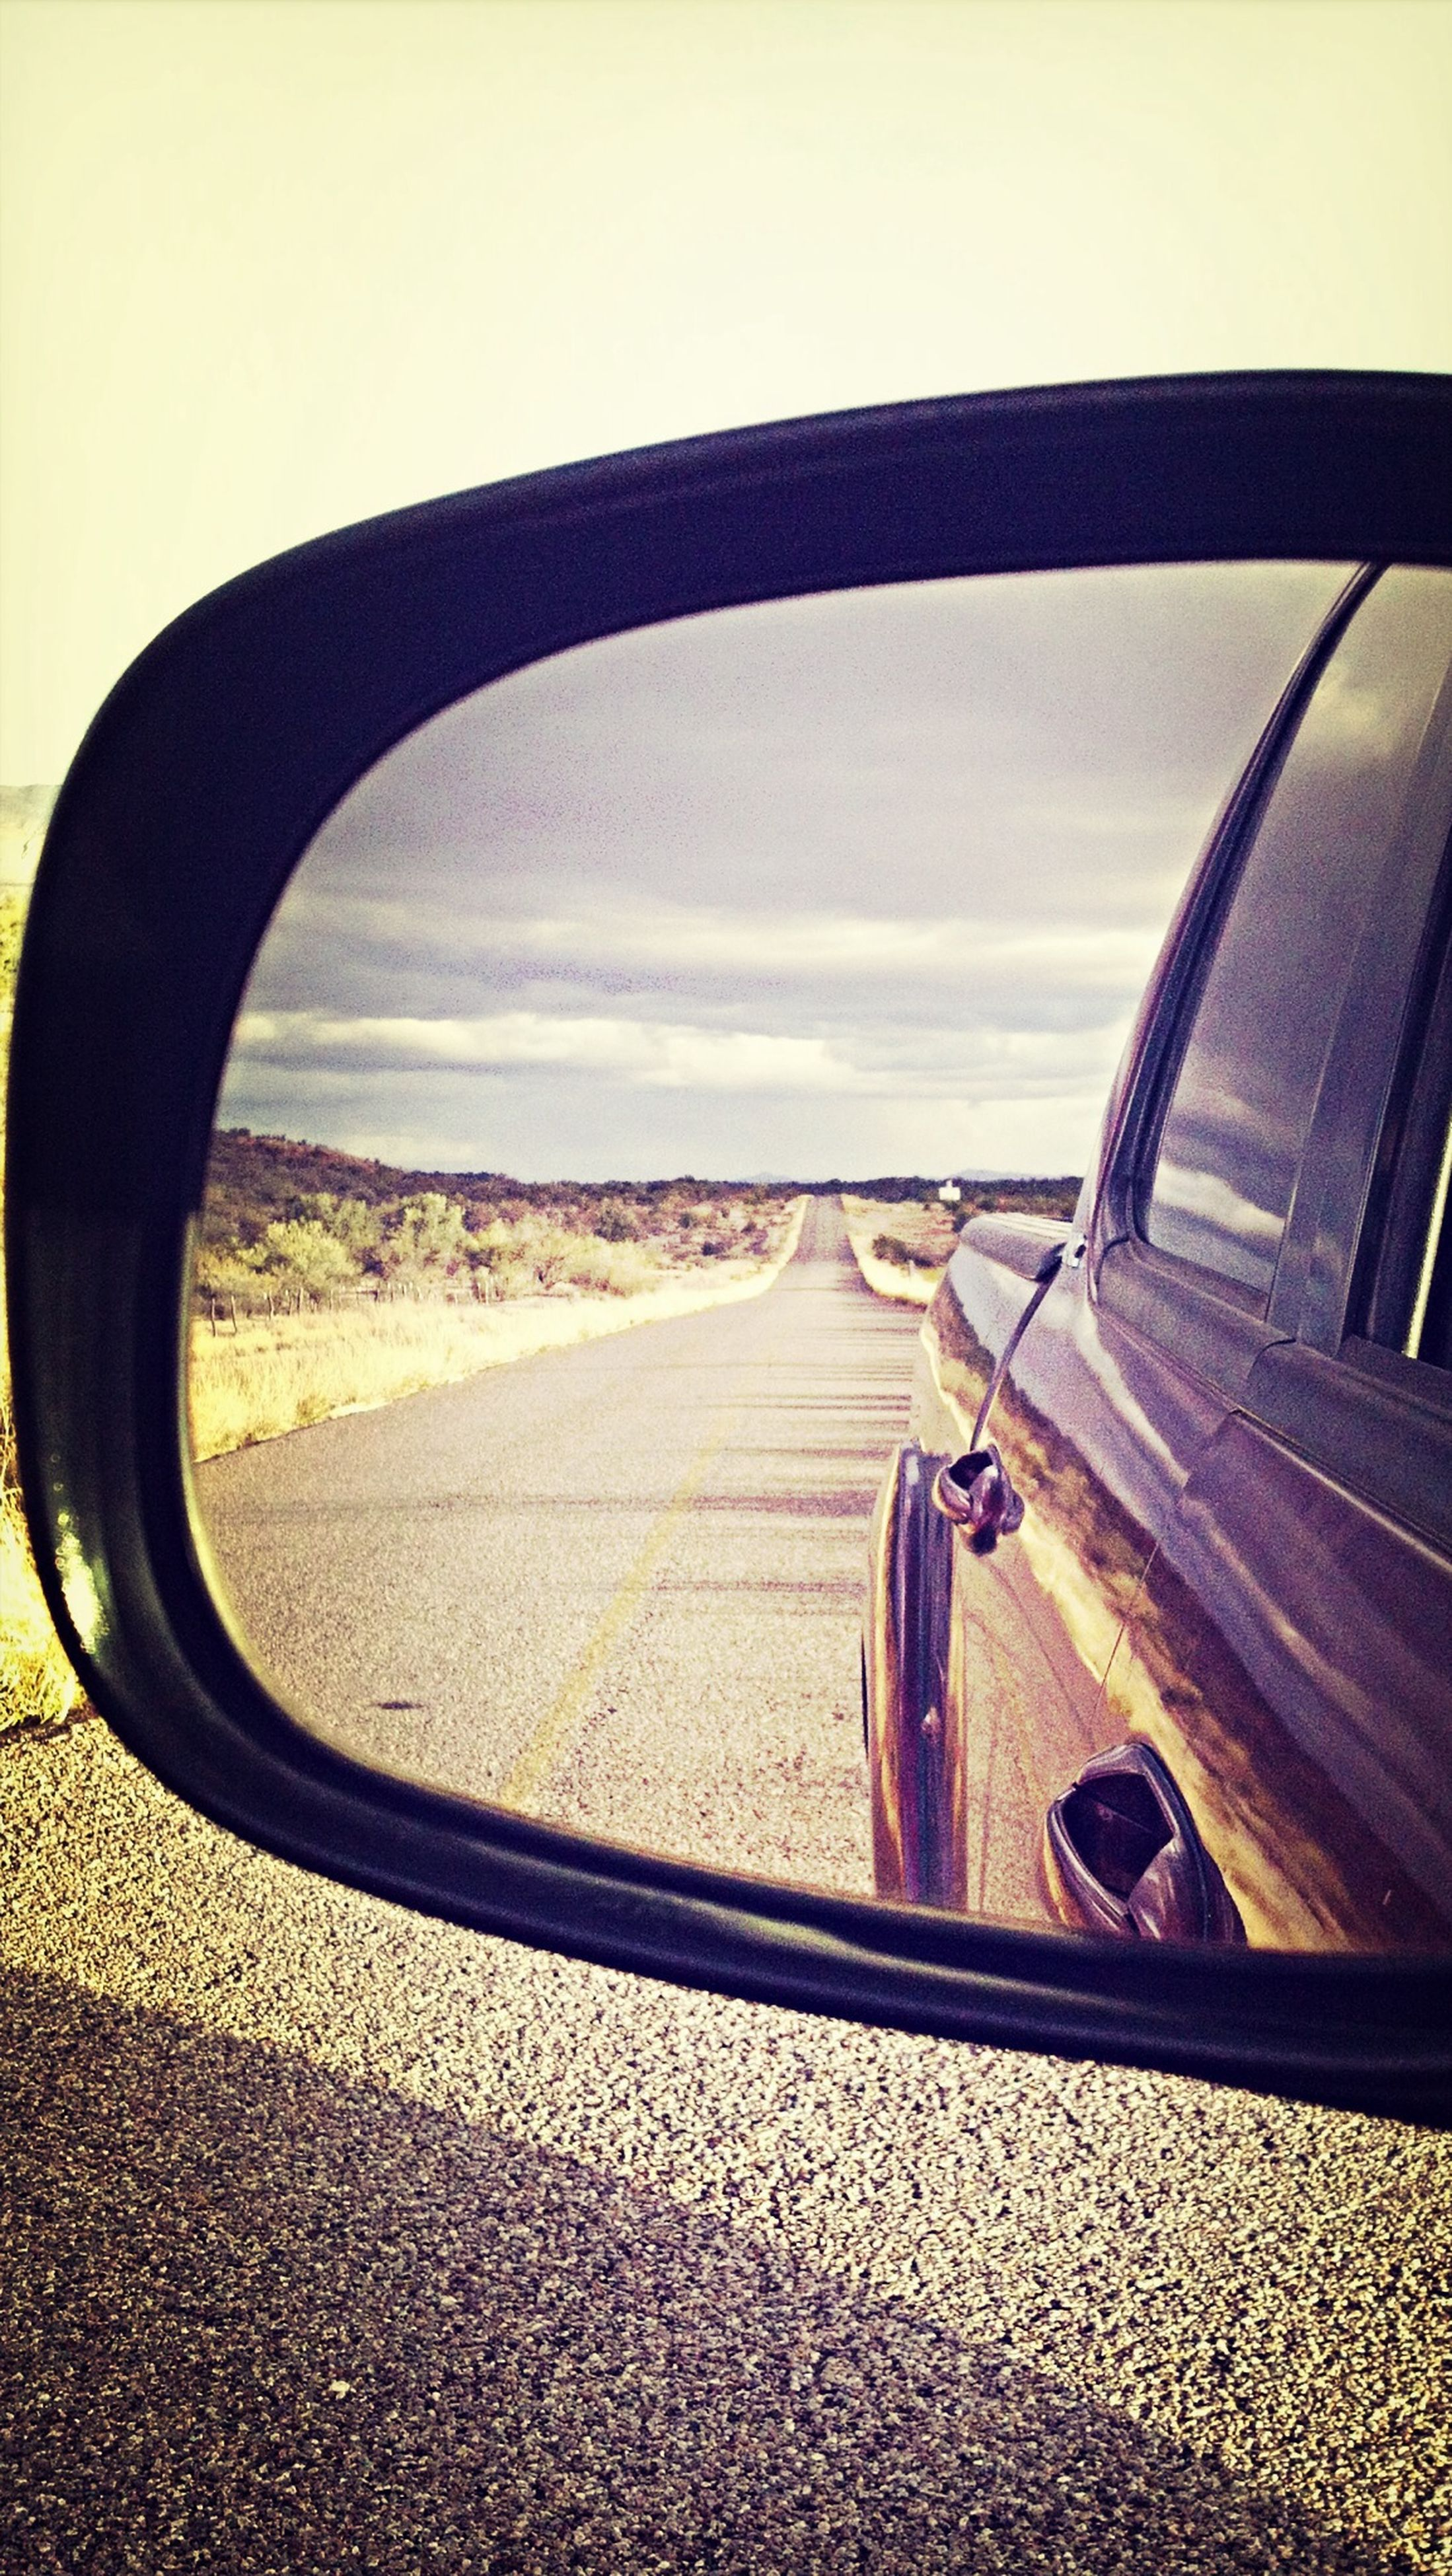 transportation, land vehicle, mode of transport, sky, road, car, side-view mirror, street, landscape, window, sunlight, travel, day, vehicle interior, close-up, on the move, glass - material, part of, outdoors, bicycle